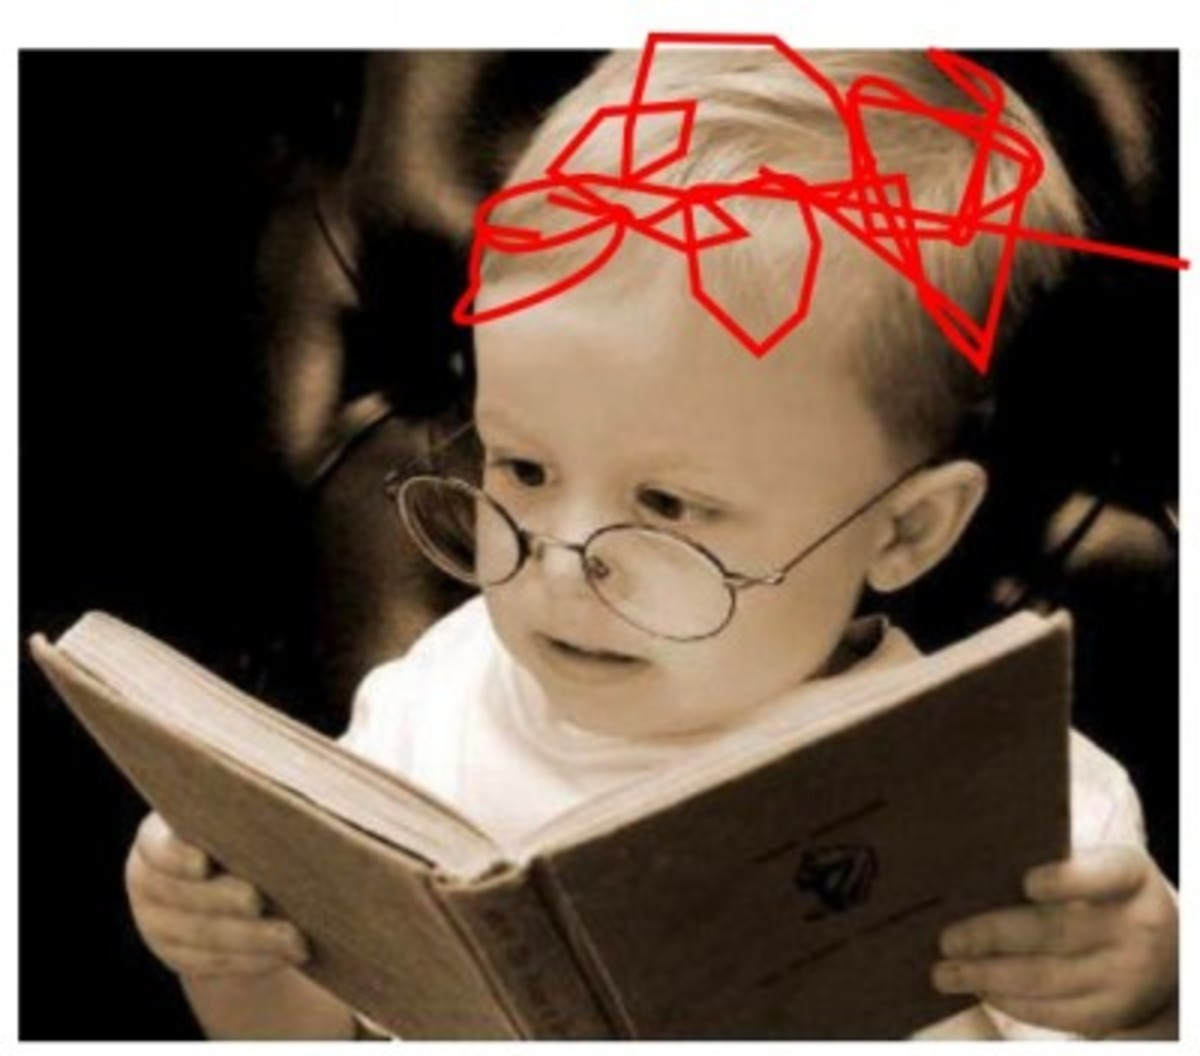 RedHead_FakeBaby_Reading-400x352